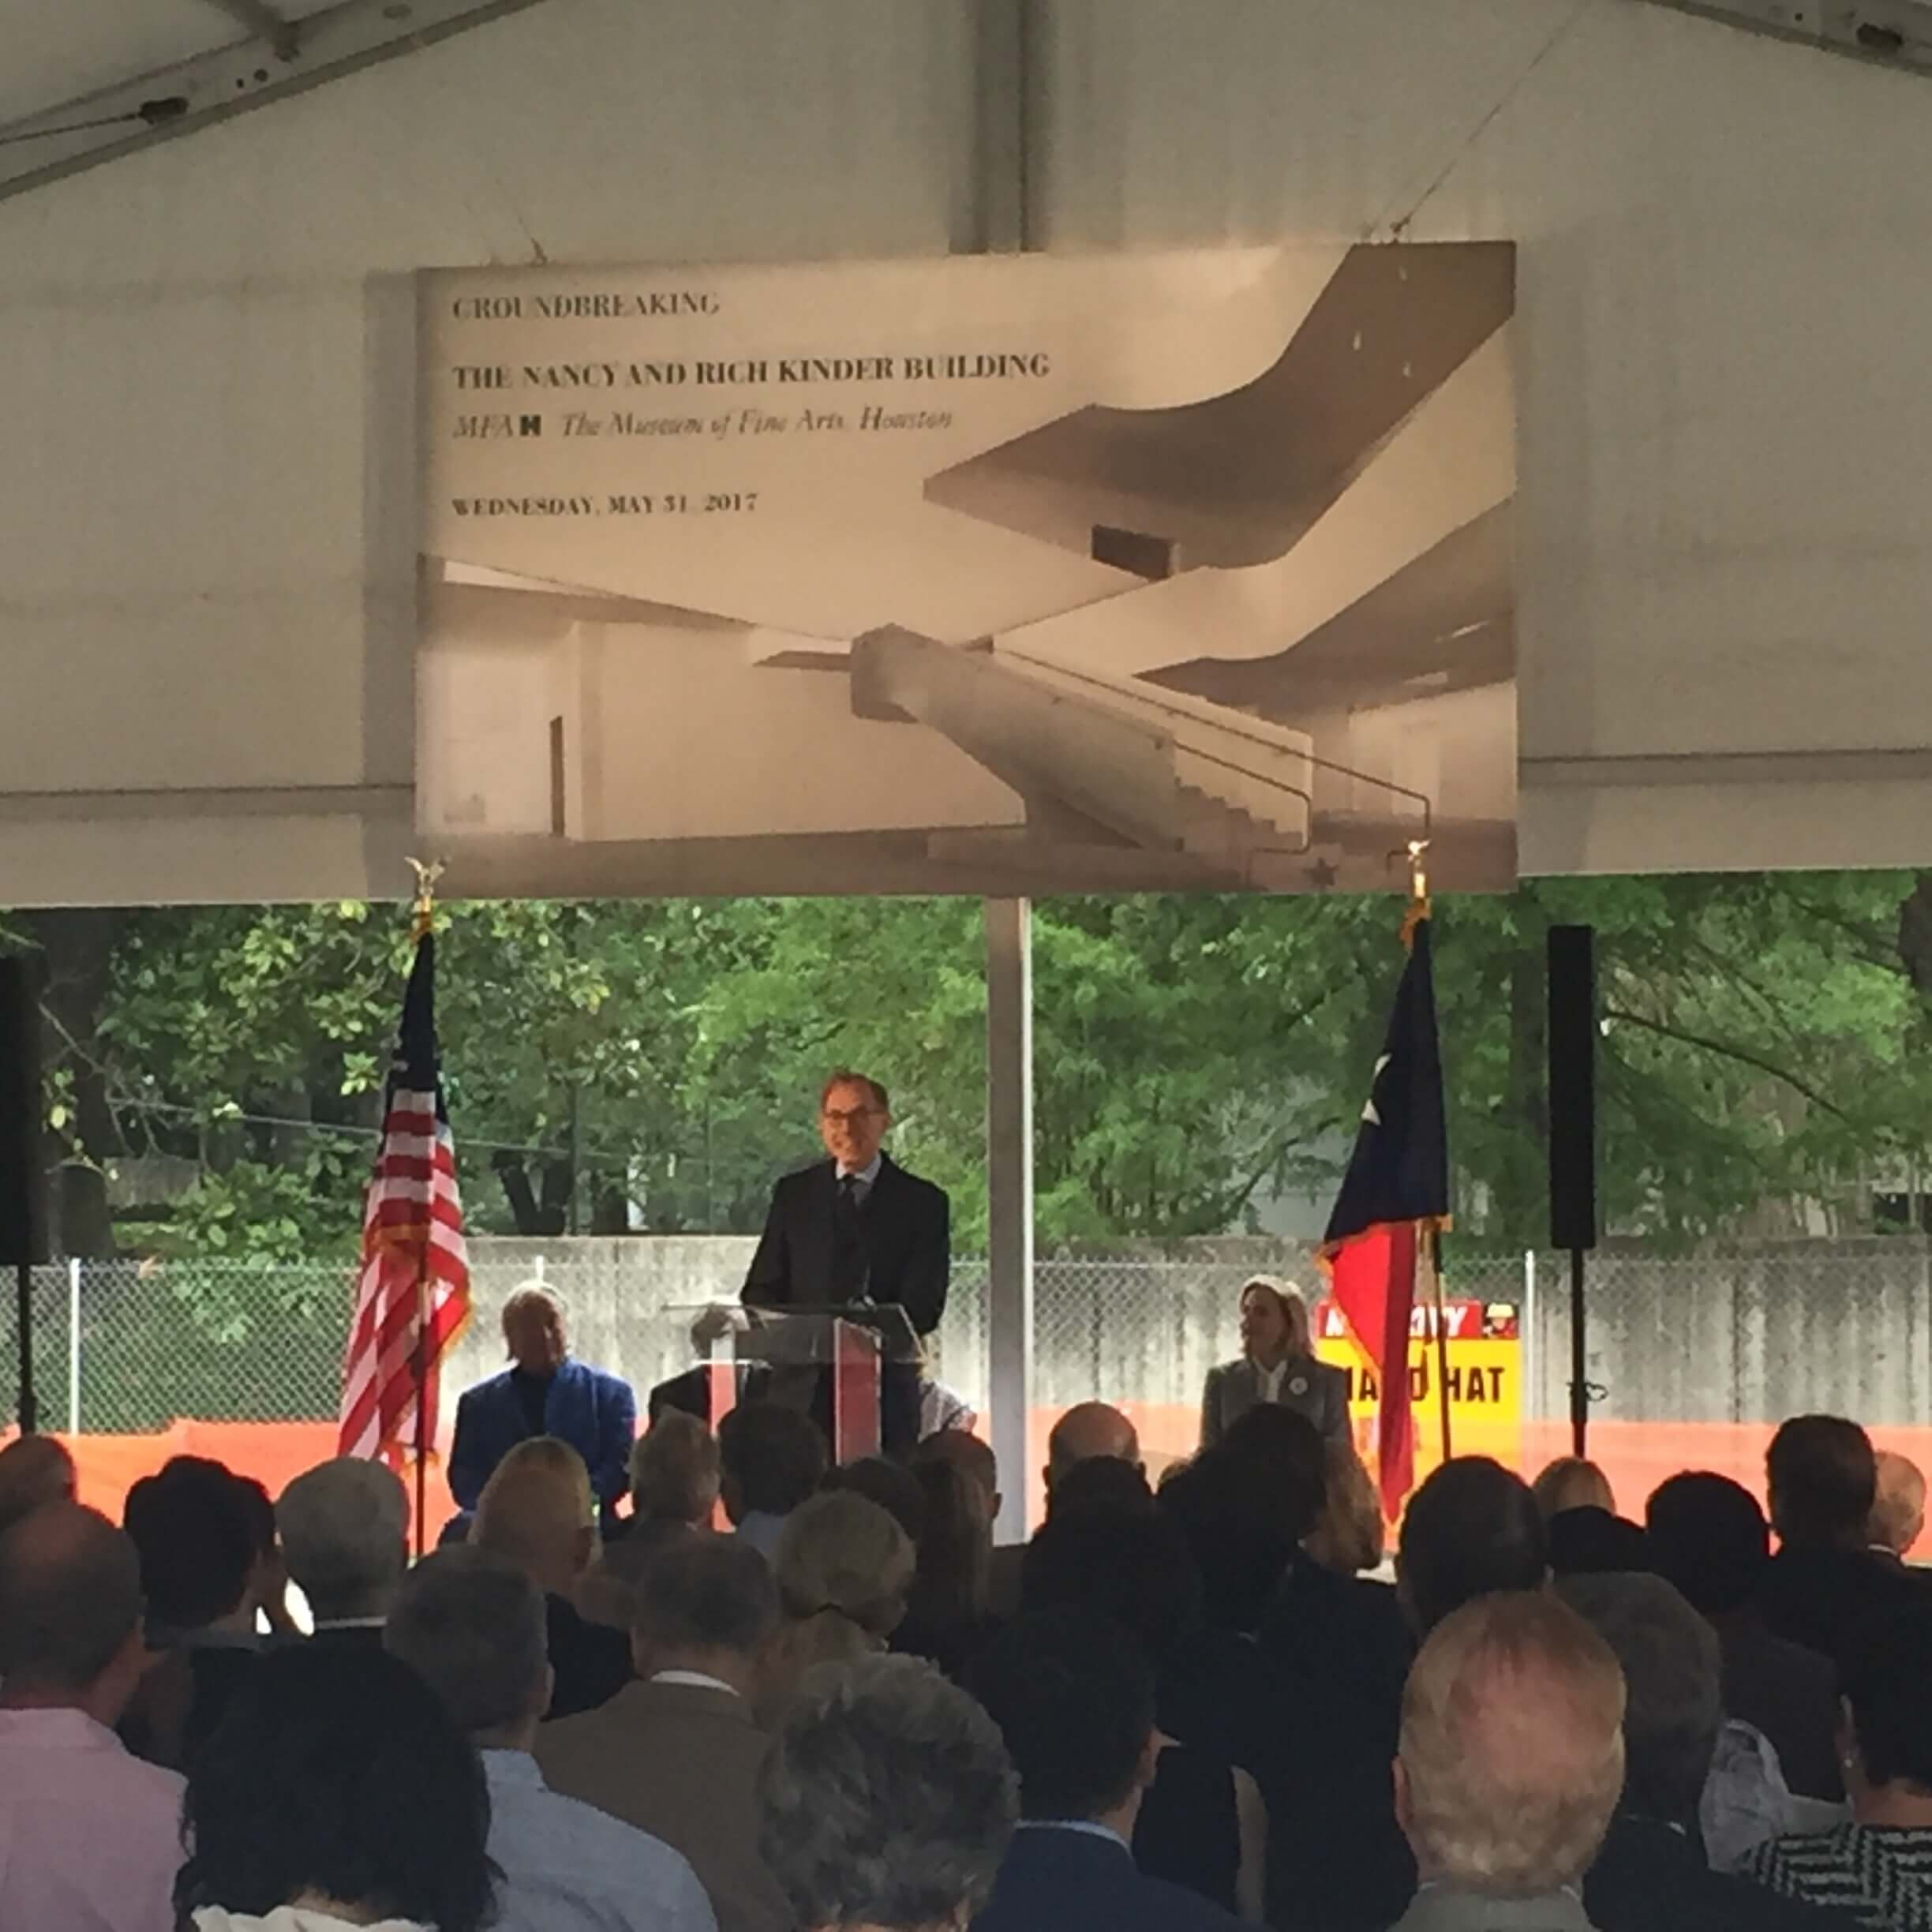 MFAH director, Gary Tinterow speaks at the groundbreaking ceremony.